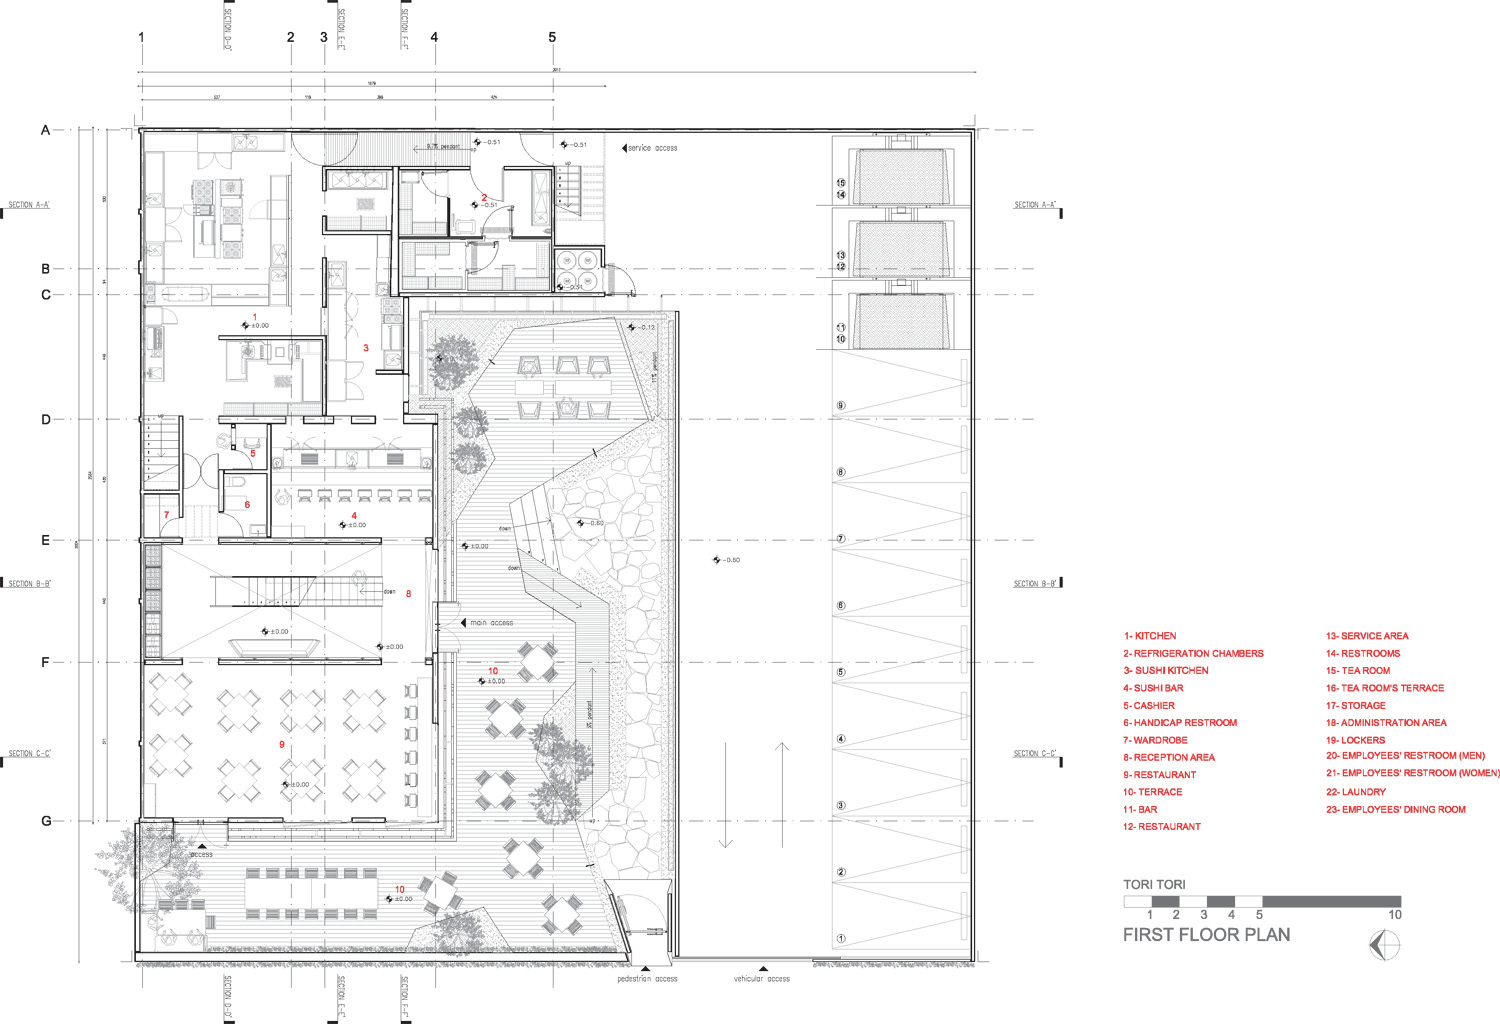 gallery 6 with First Floor Plan 8 on 976 also 2437 moreover 4fff6e7028ba0d555700007d Alesia Museum Bernard Tschumi Architects Section together with 55245ab8e58ecea9f8000116 Typical Floor Plan also First Floor Plan 8.